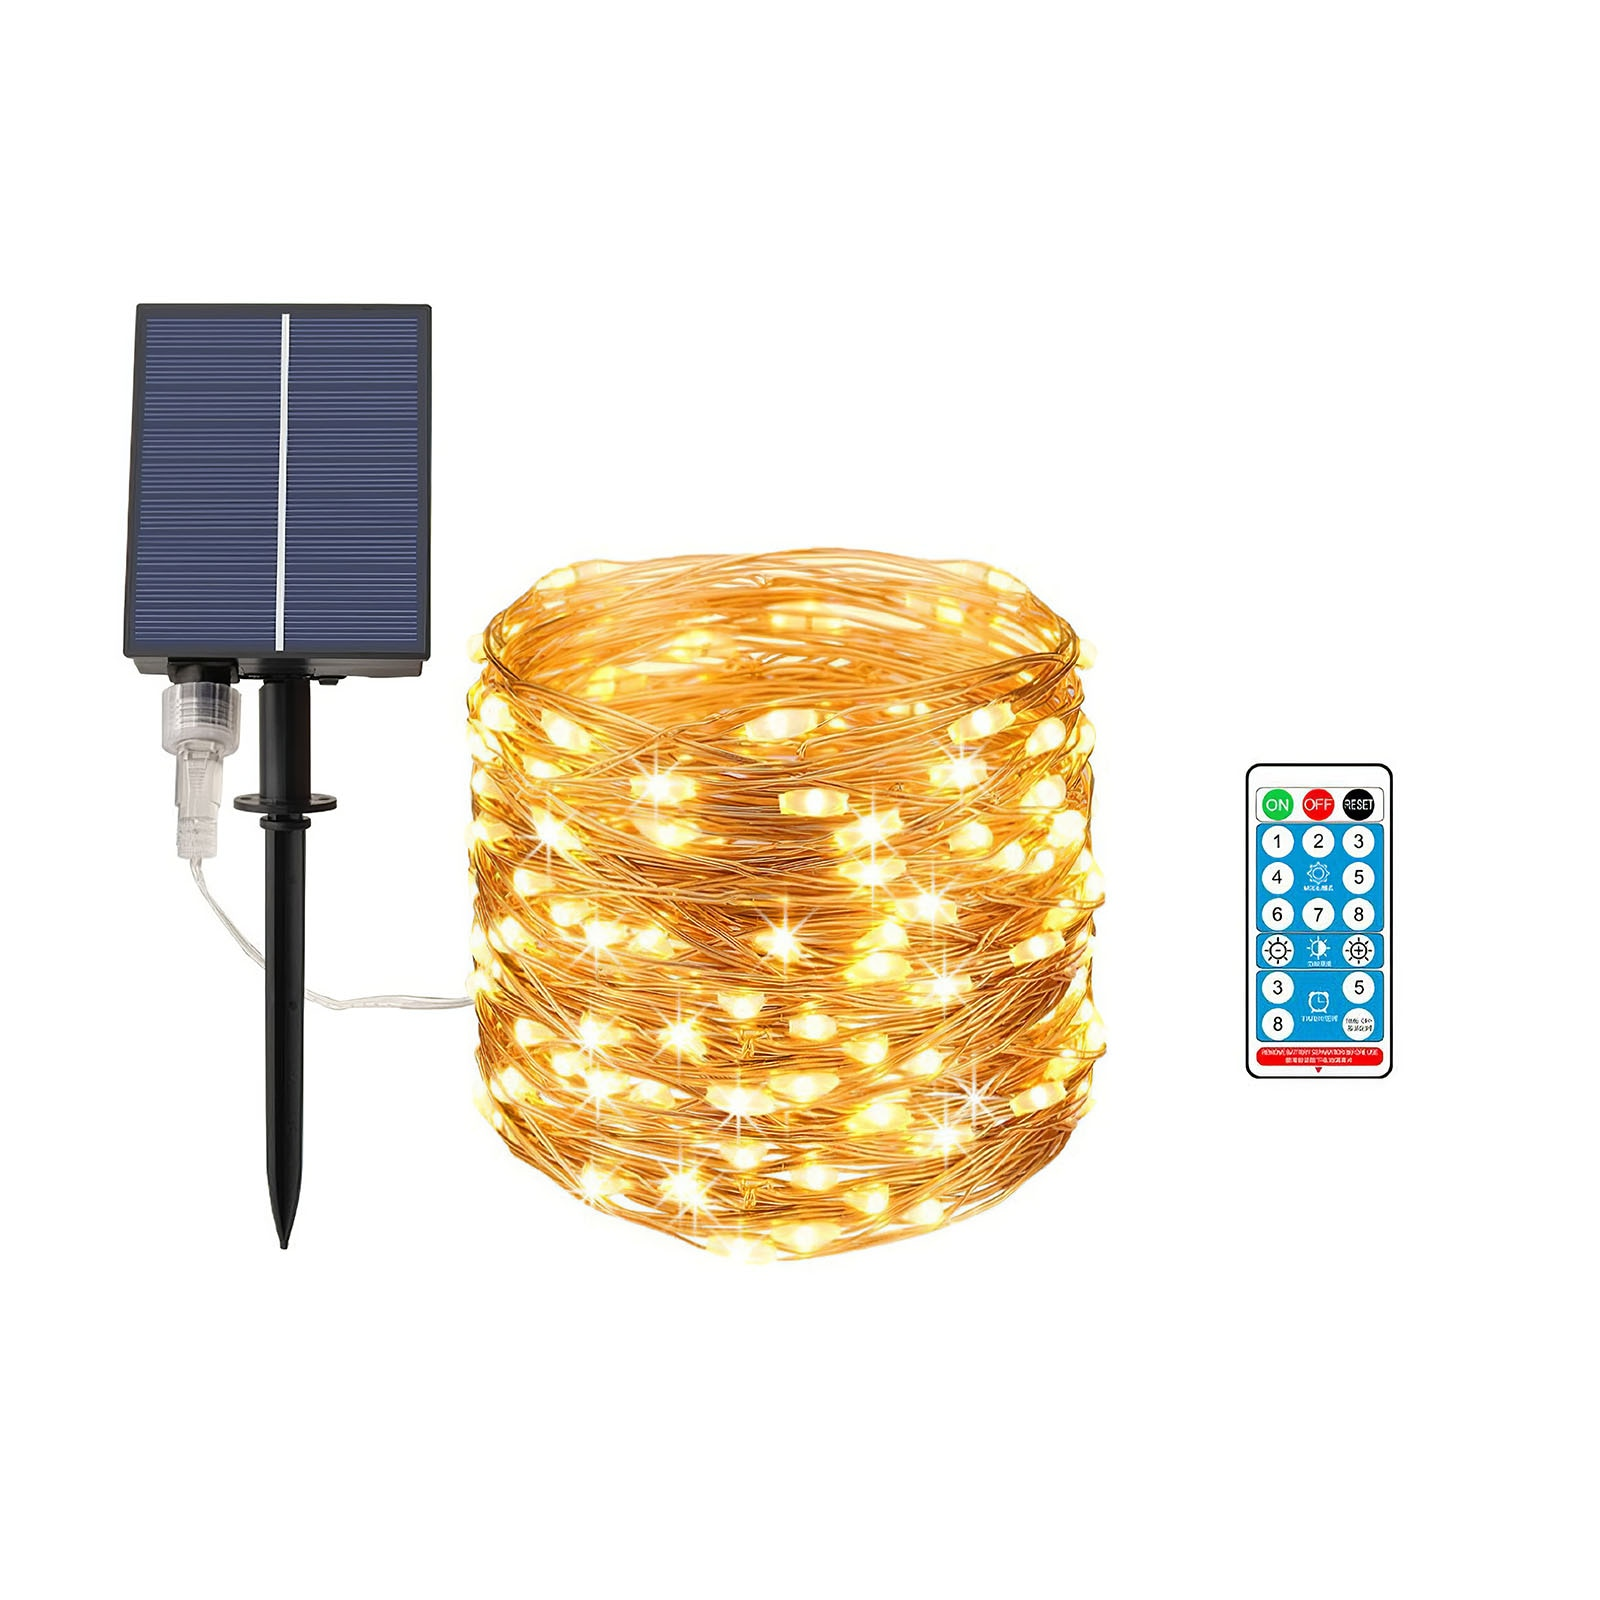 Solar String Light Wire Light LED Rope Light IP 67 Waterproof High Quality Easy To Use Decorative String Lamp For Courtyard